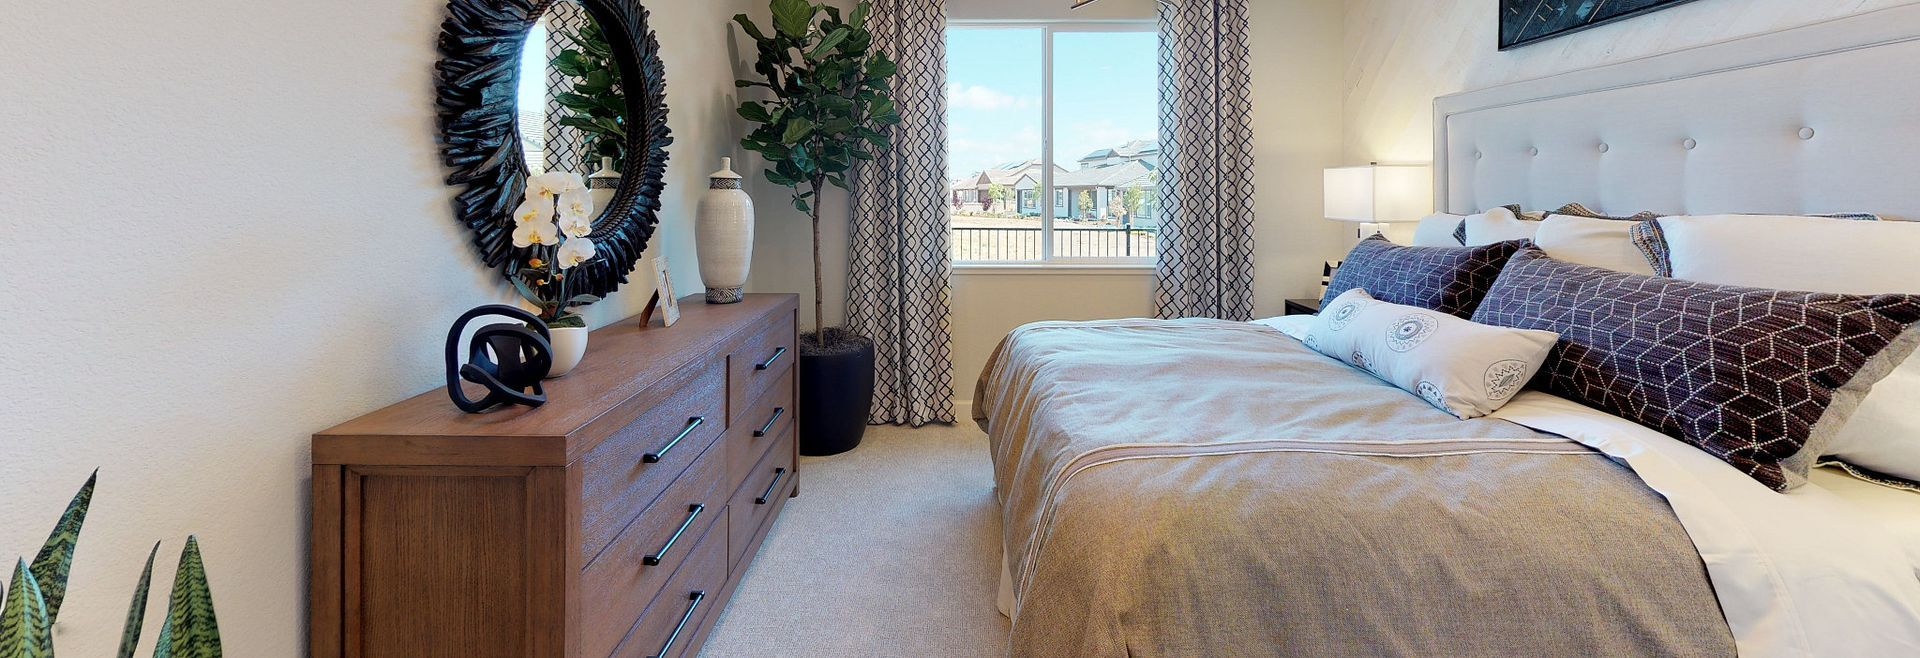 Bedroom featured in the Aria By Shea Homes - Trilogy in Oakland-Alameda, CA